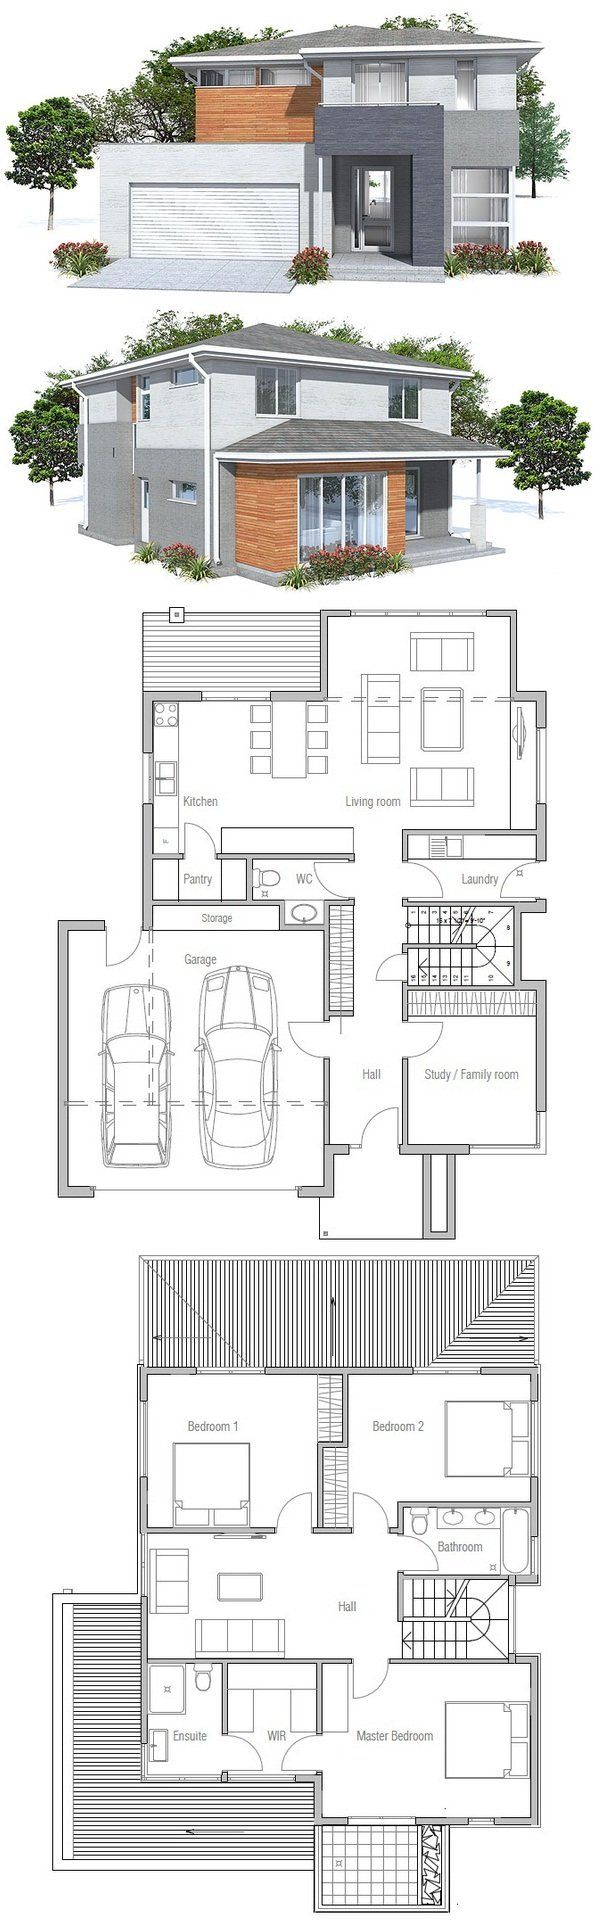 Best 25 modern house plans ideas on pinterest modern for Small contemporary home designs